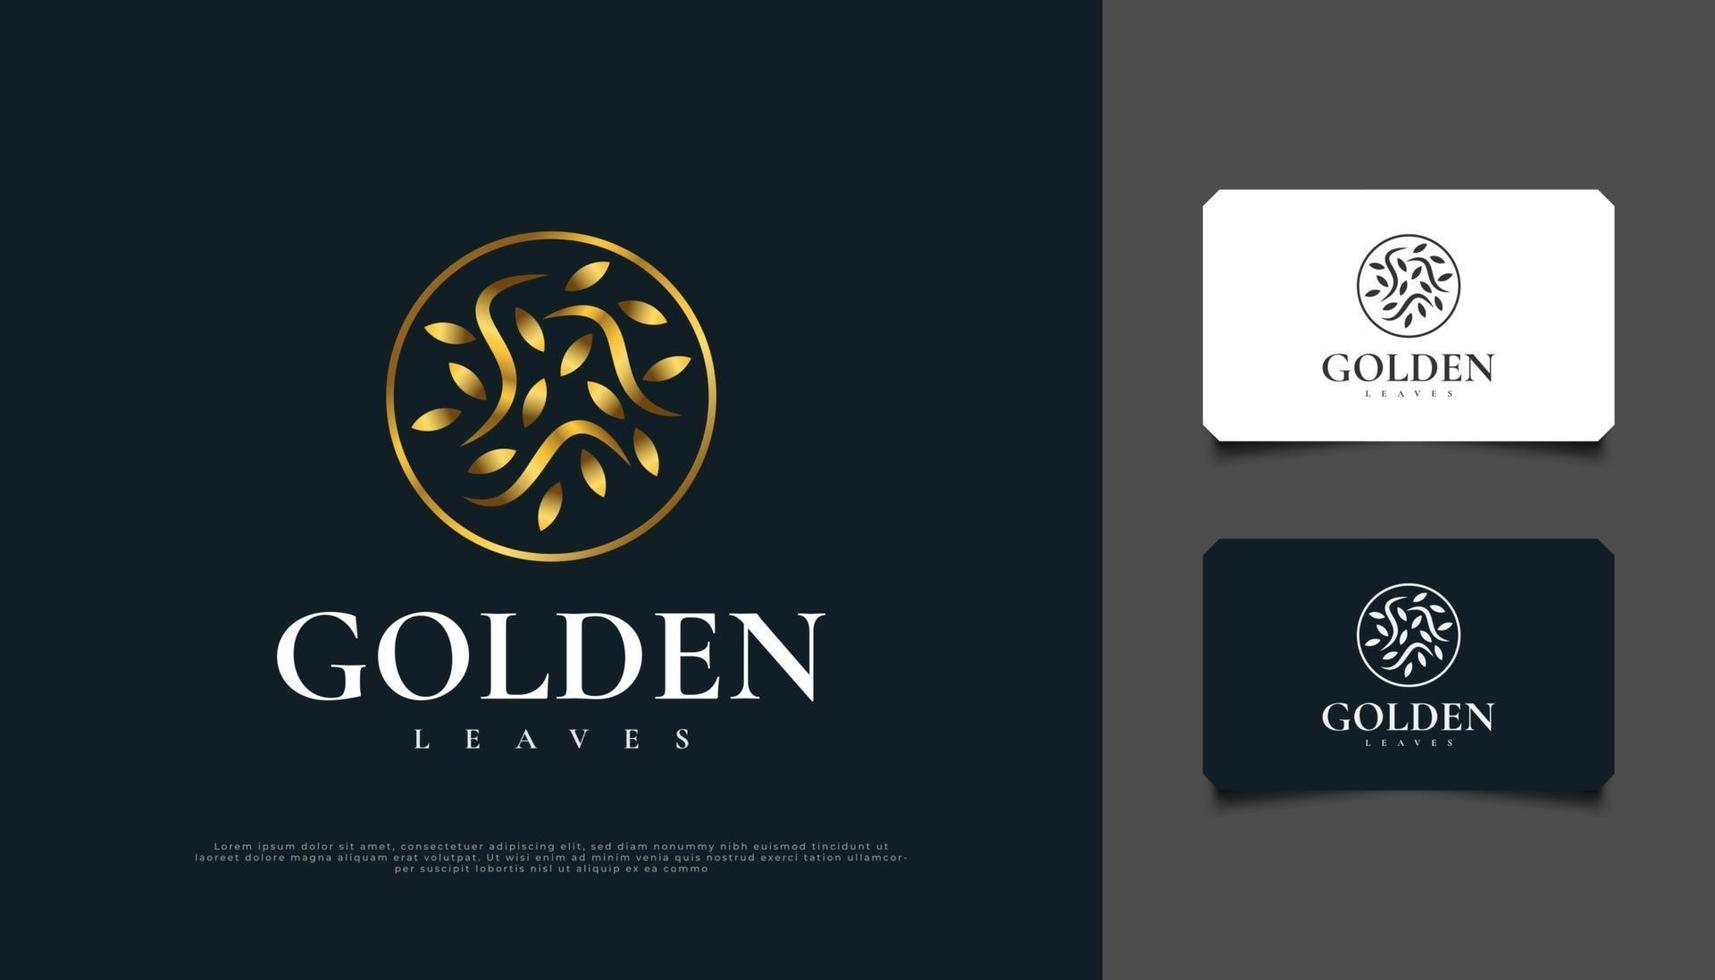 Golden Leaves Logo Design in a Circle, Suitable for Spa, Beauty, Florists, Resort, or Cosmetic Product Identity vector